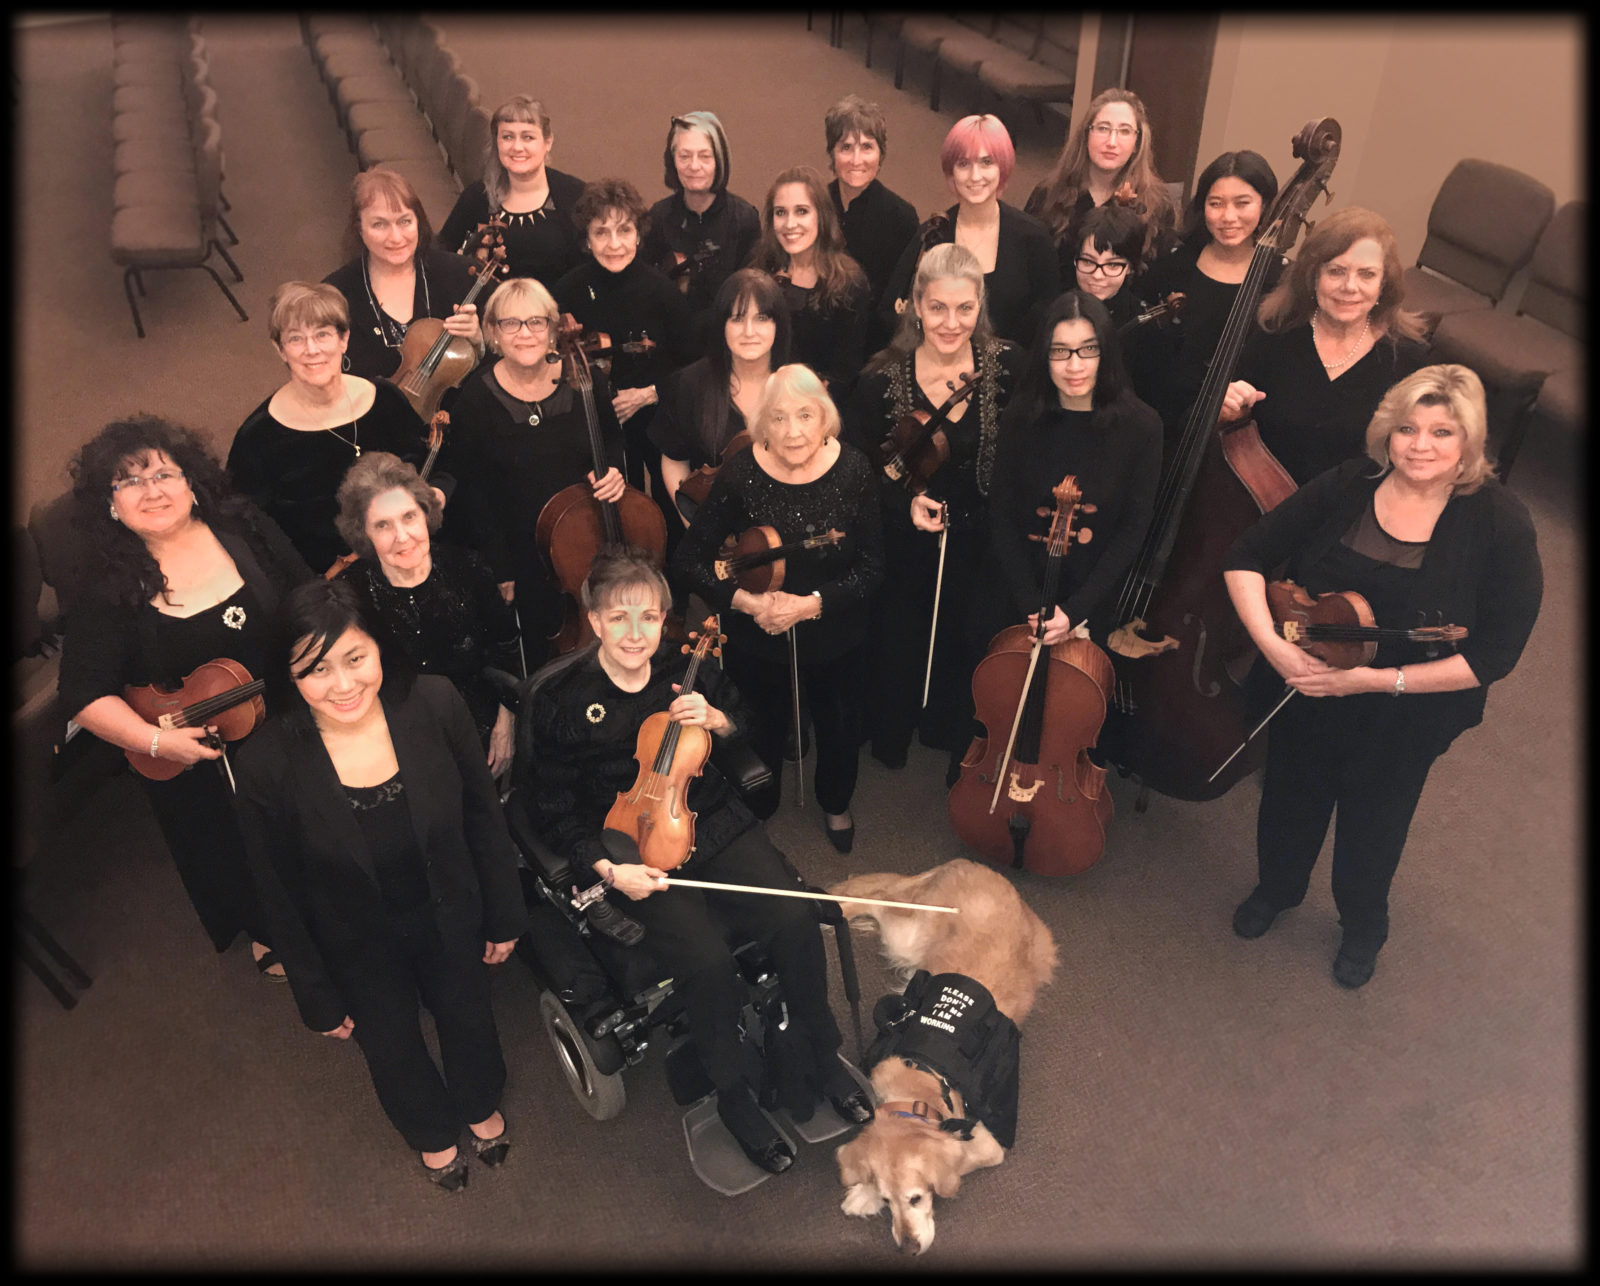 Image of WOA Women's Orchestra of Arizona musicians.